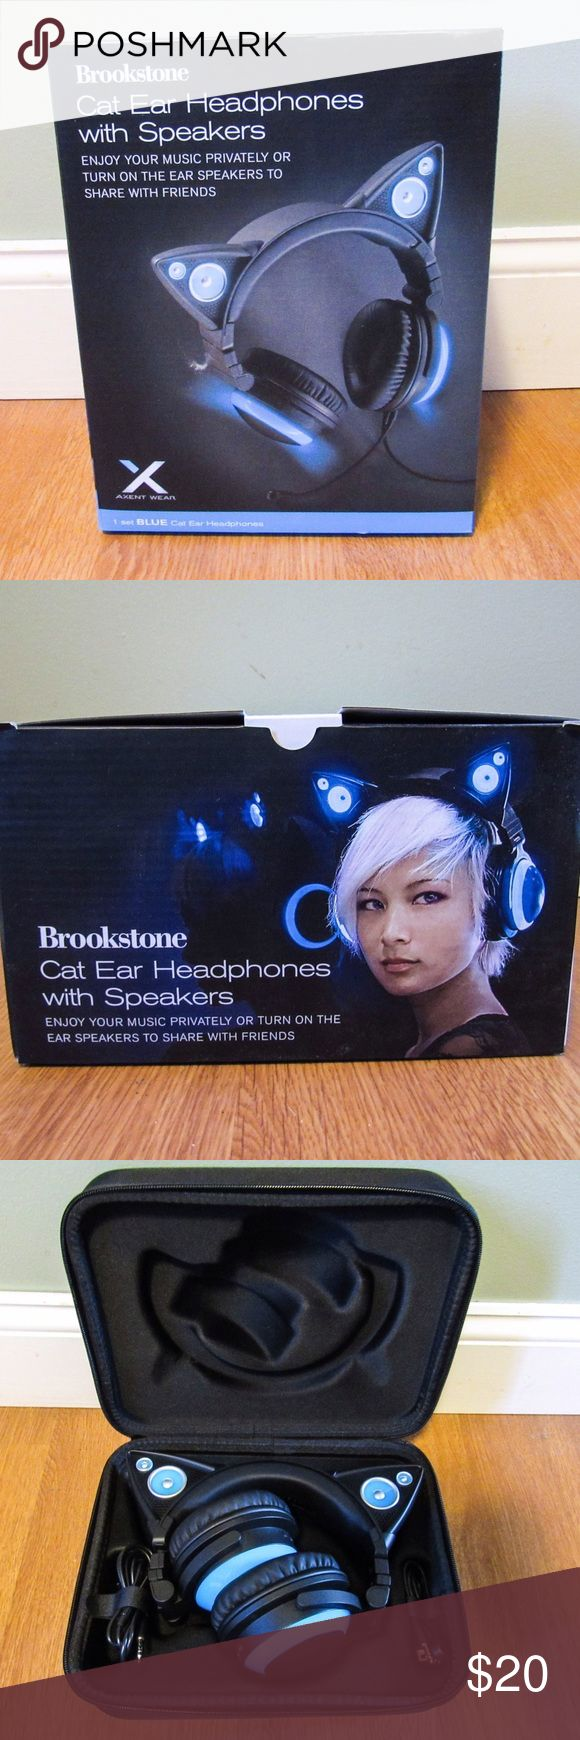 Headphones with Speakers BRAND NEW IN BOX. Over-the-ear headphones with cat ear-shaped speakers on top by Brookstone. You can listen by yourself or with friends! Come in super cute black and blue design. See last photo for technical details. These would make a great Christmas gift for any music or cat lover in your life!! Reasonable offers accepted, immediate shipping Brookstone Accessories